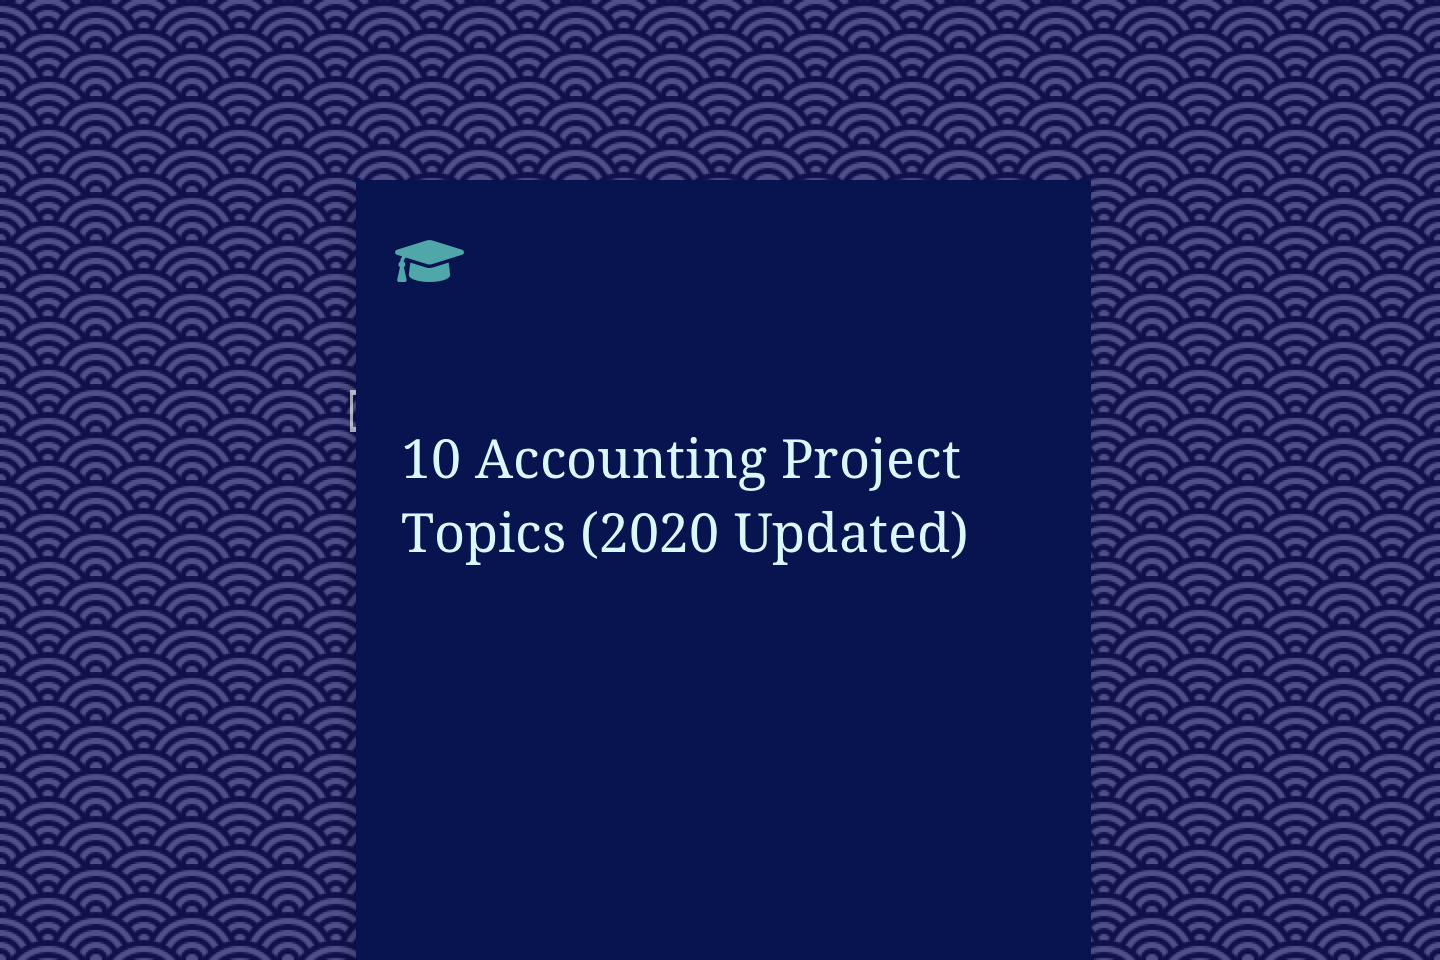 10 Accounting Project Topics (2020 Updated)